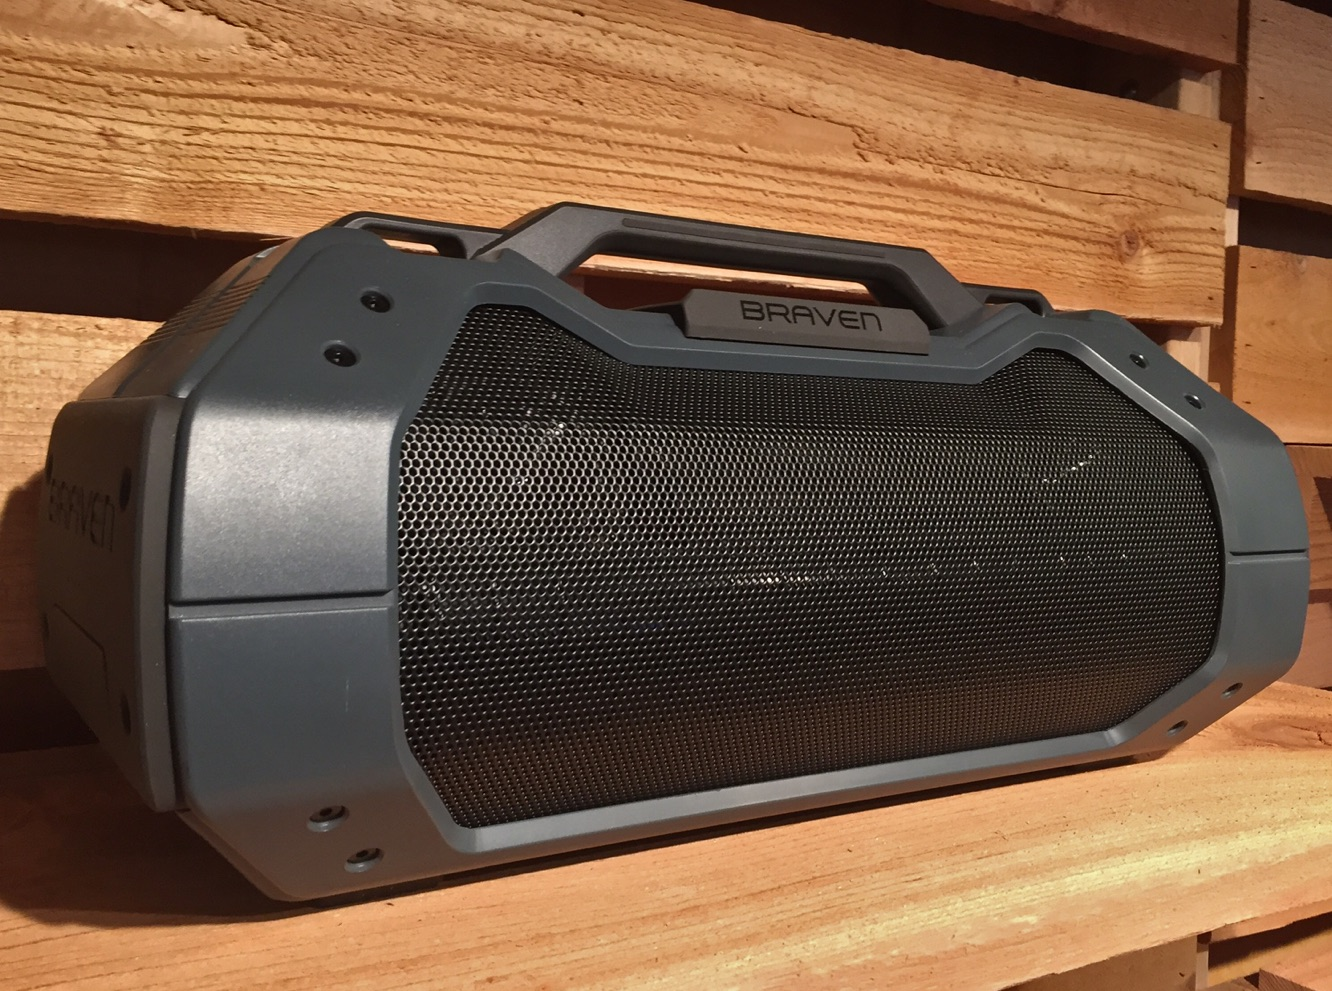 Braven intros new speakers at CES, including the BRV-XXL and BRV-BLADE LE 1